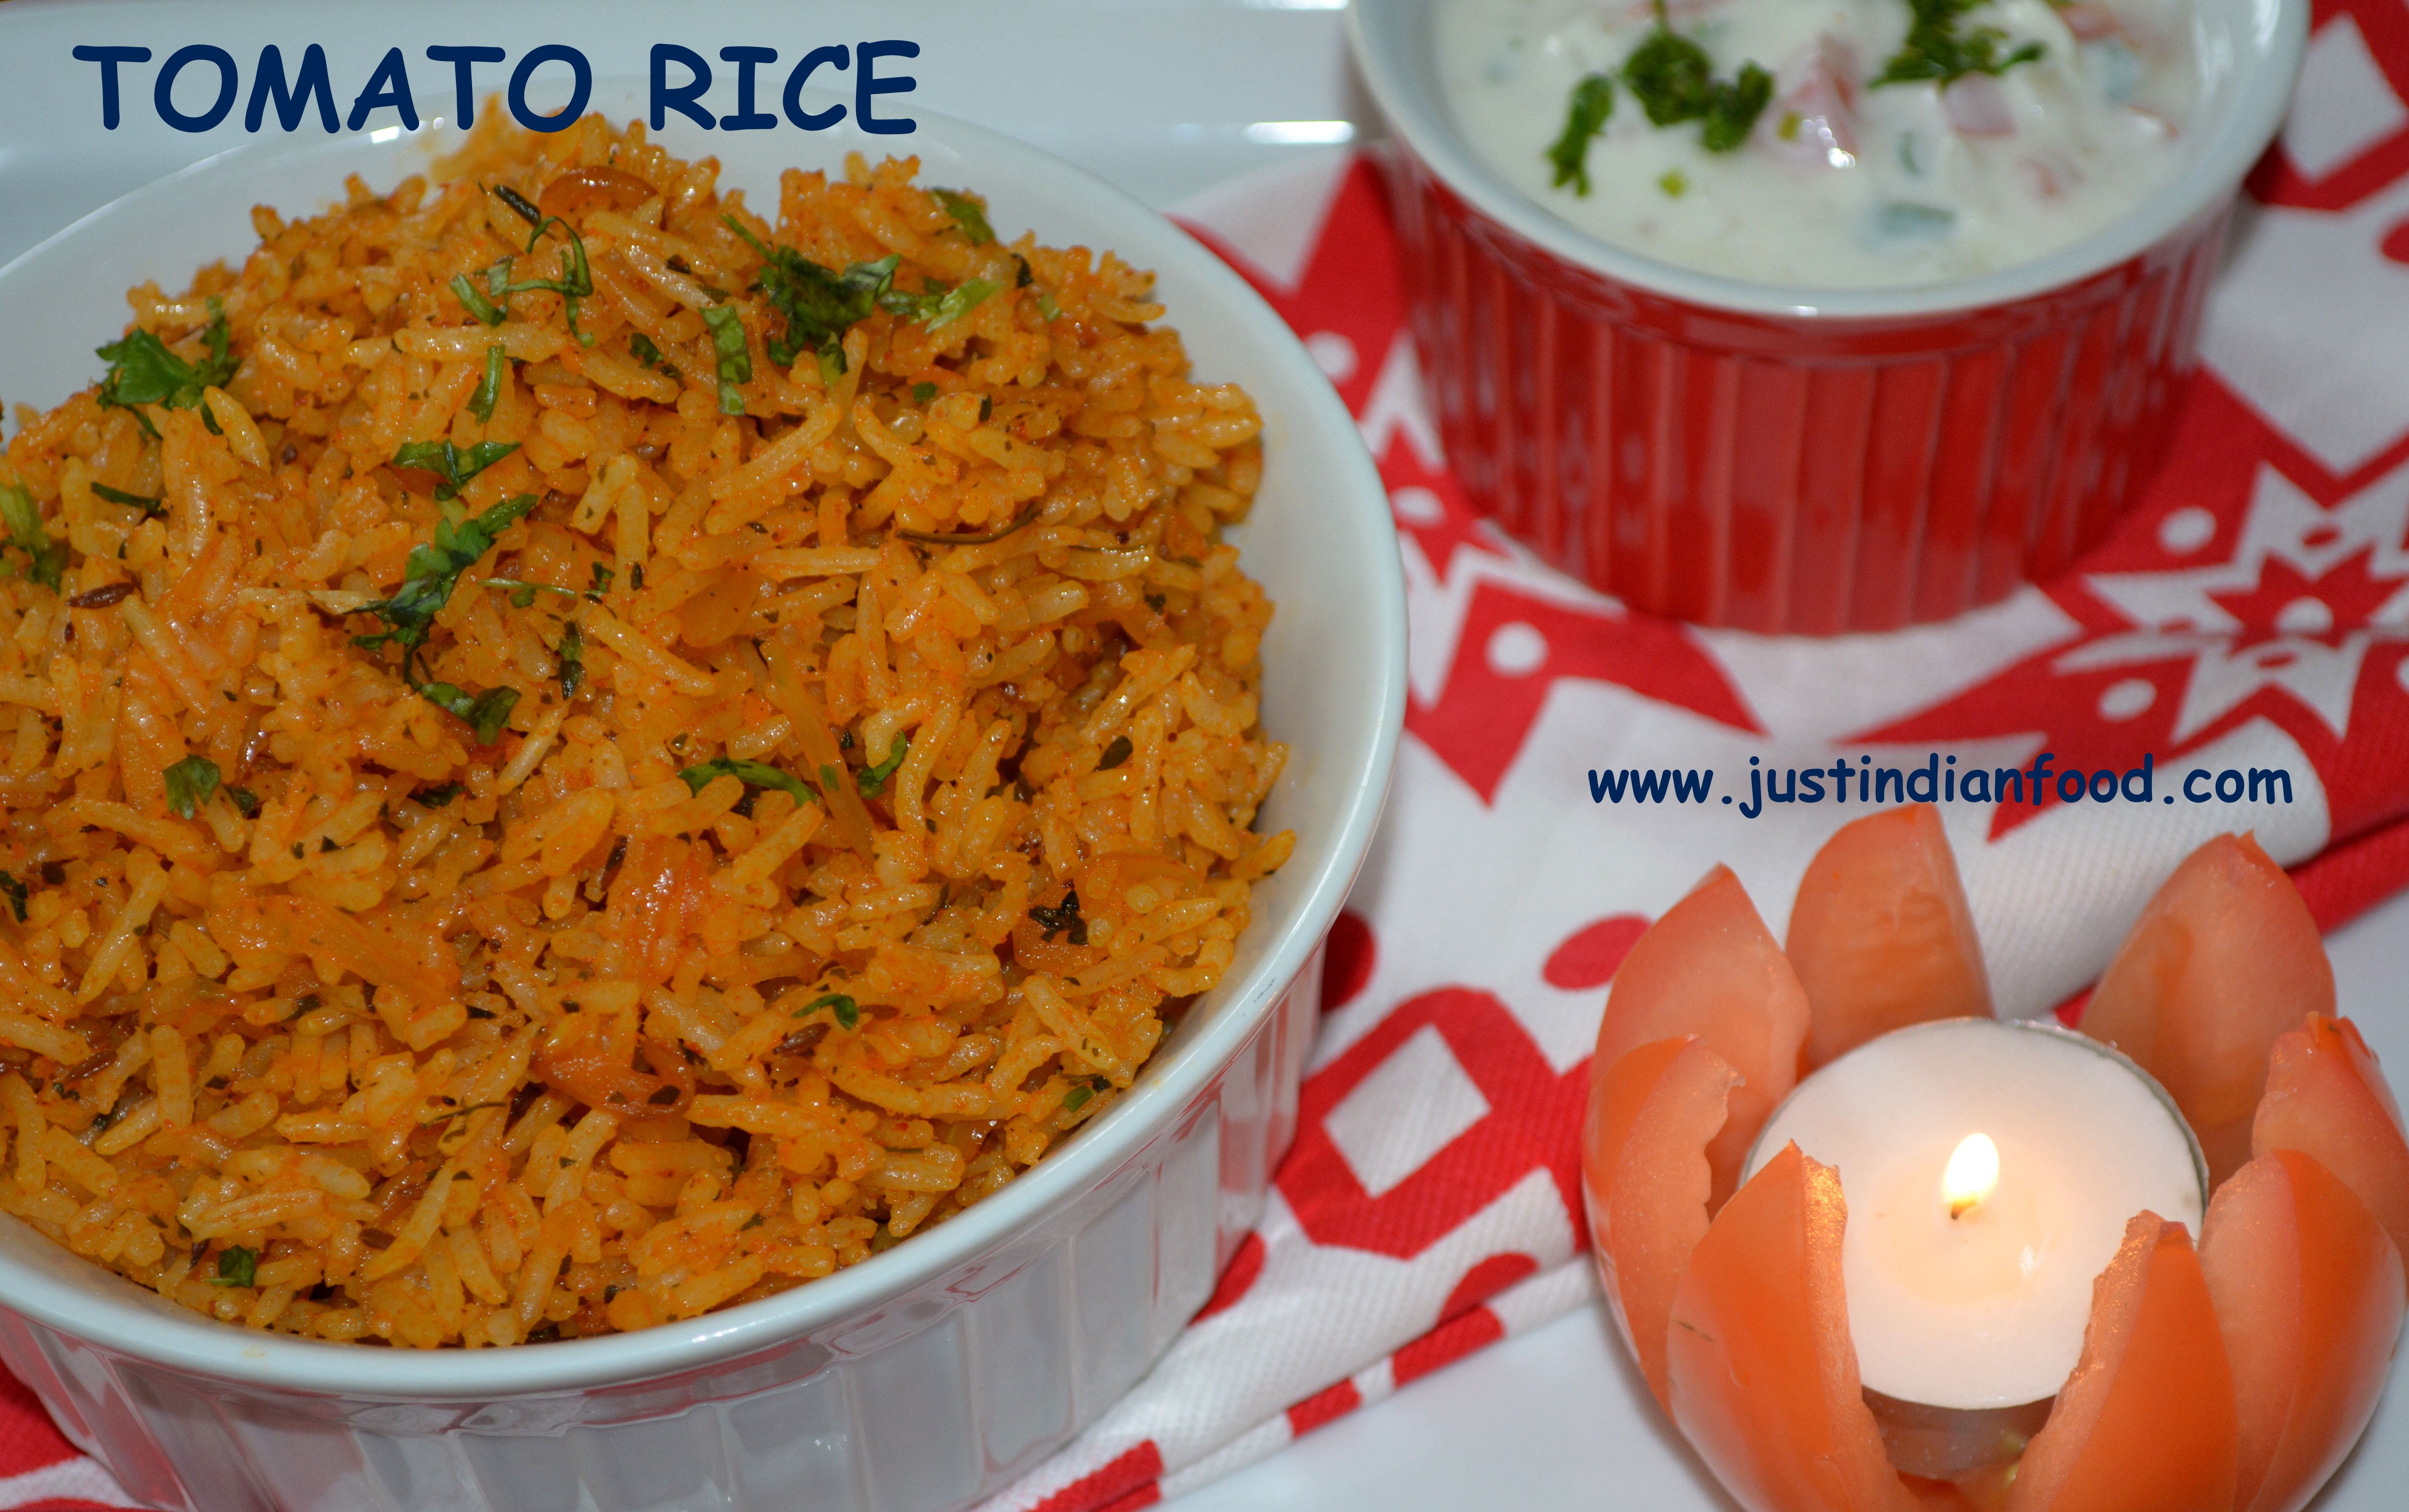 Tomato rice organic grills and baking pinterest tomato rice foods tomato rice tomato ricegrillsindian recipesorganicindian forumfinder Gallery